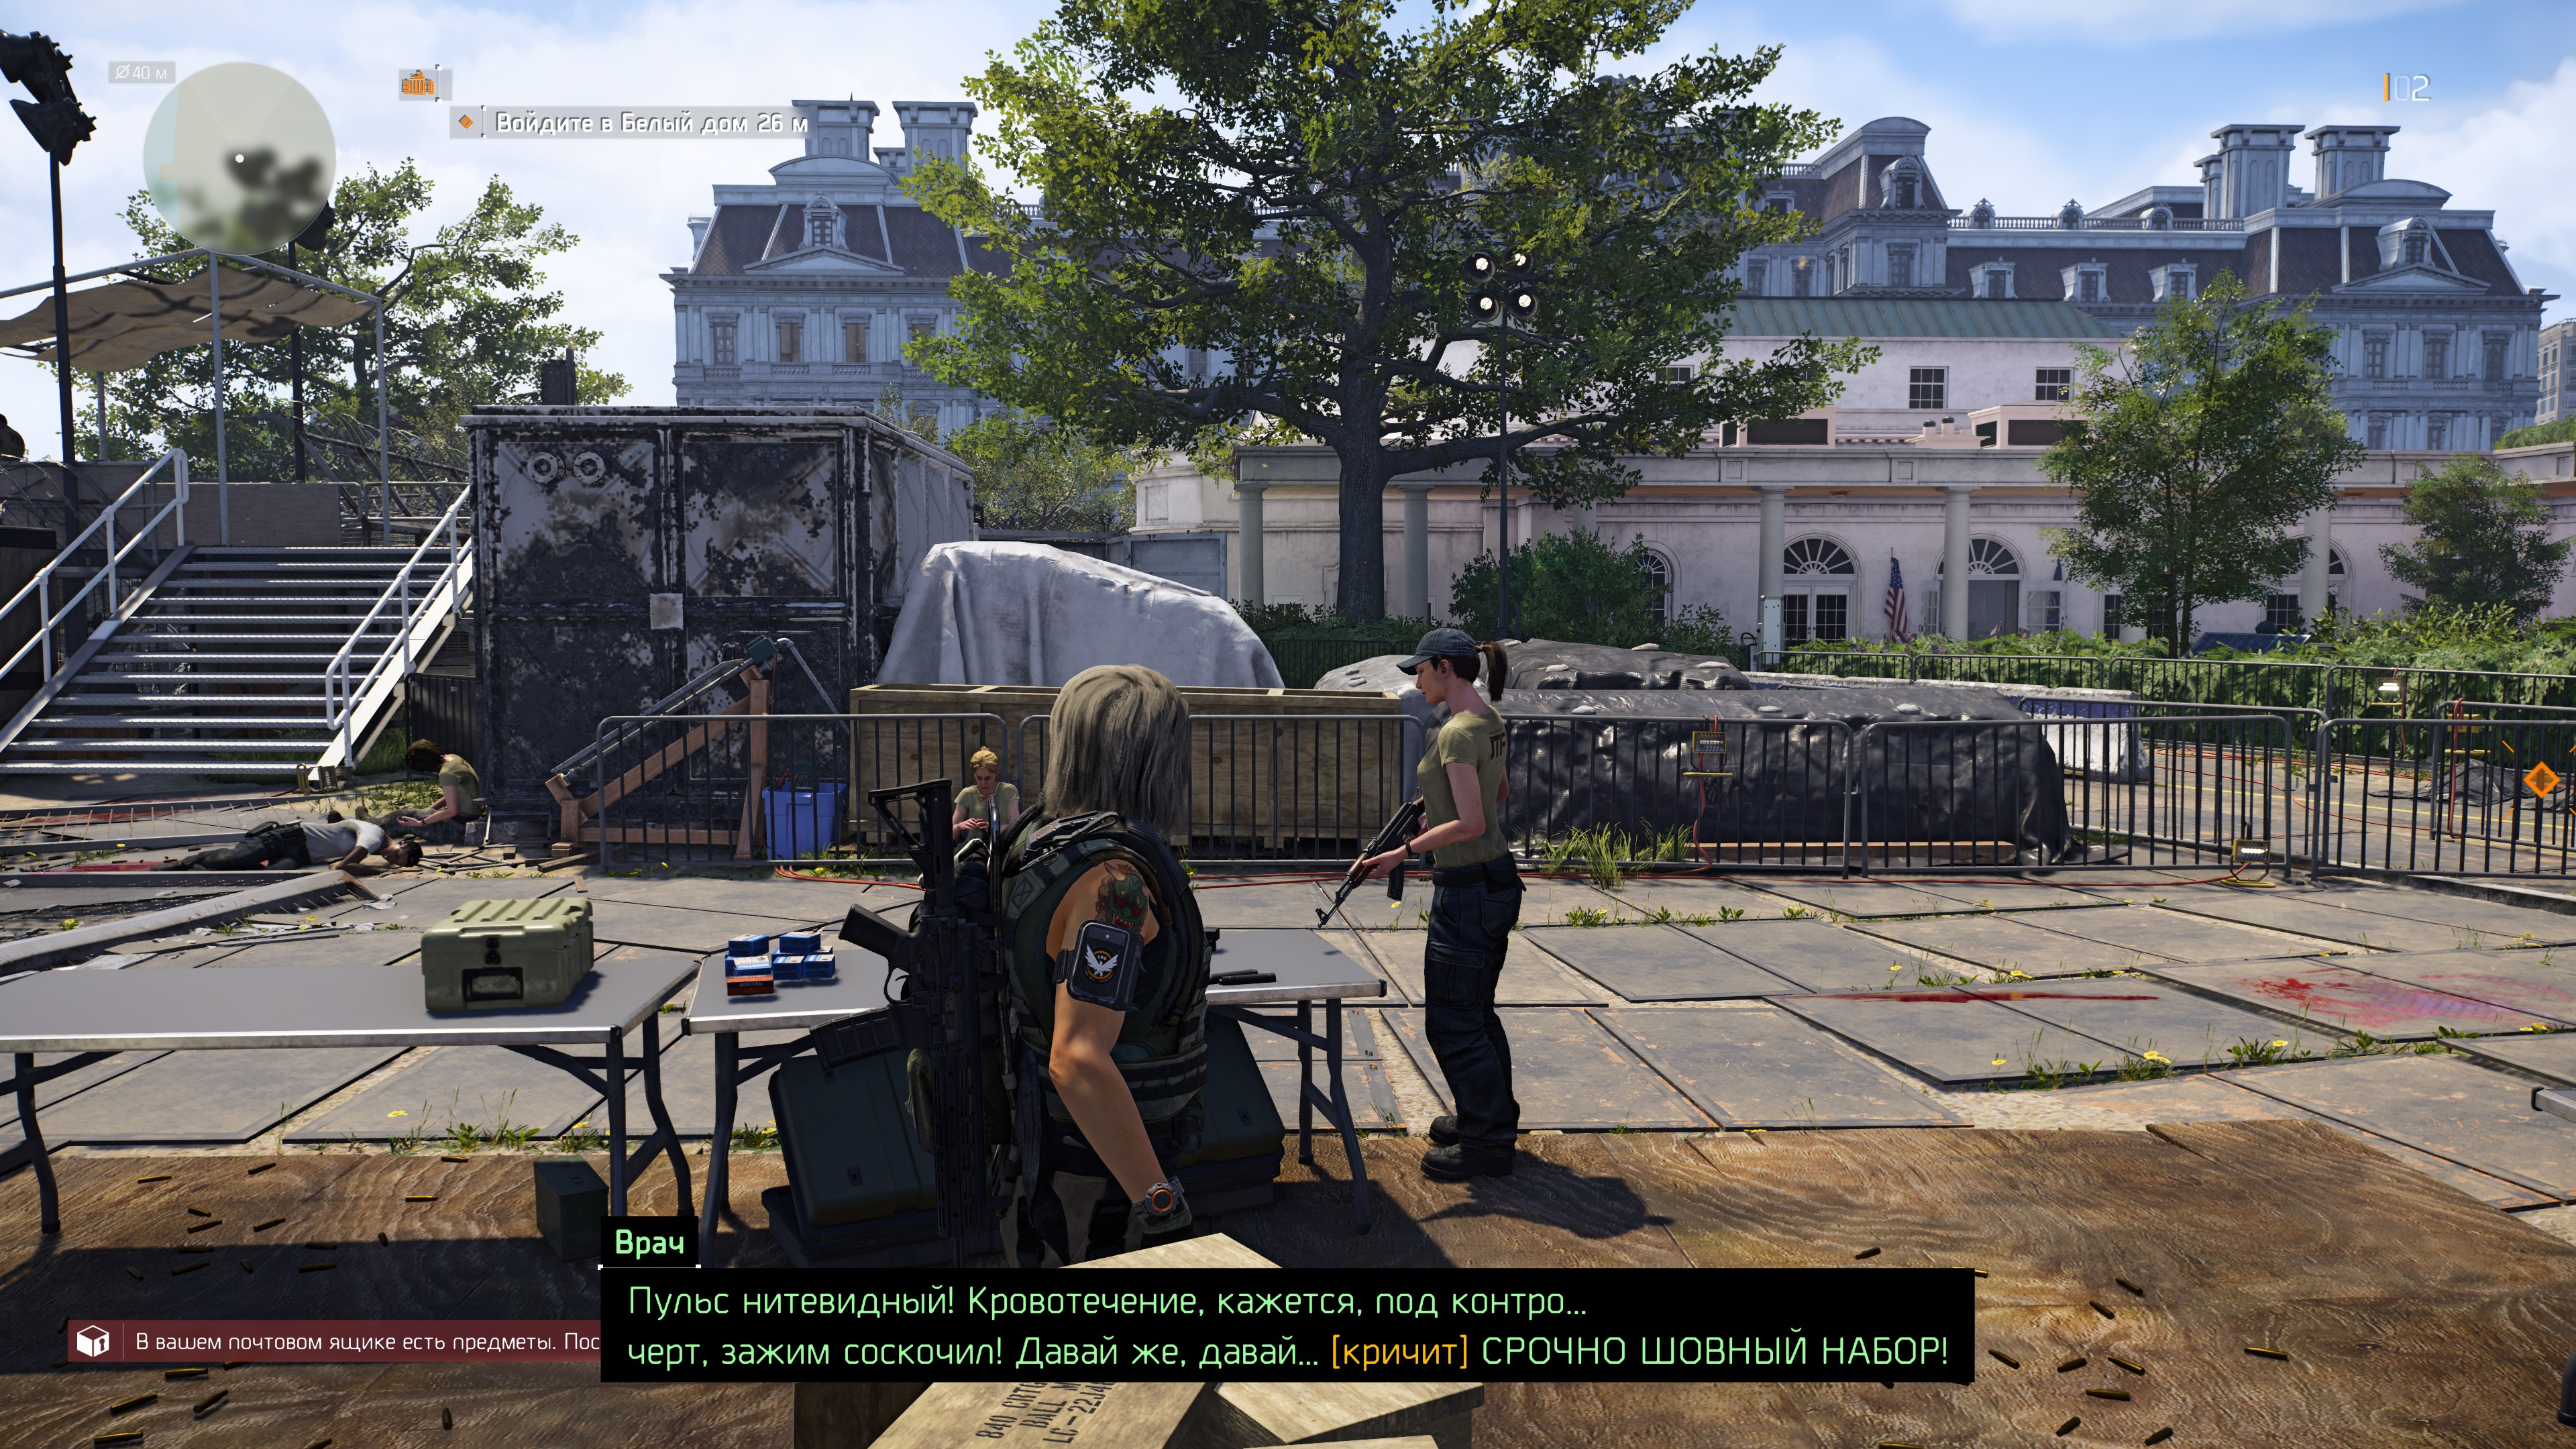 Tom Clancy's The Division® 22020-3-1-6-6-59.jpg - Tom Clancy's The Division 2